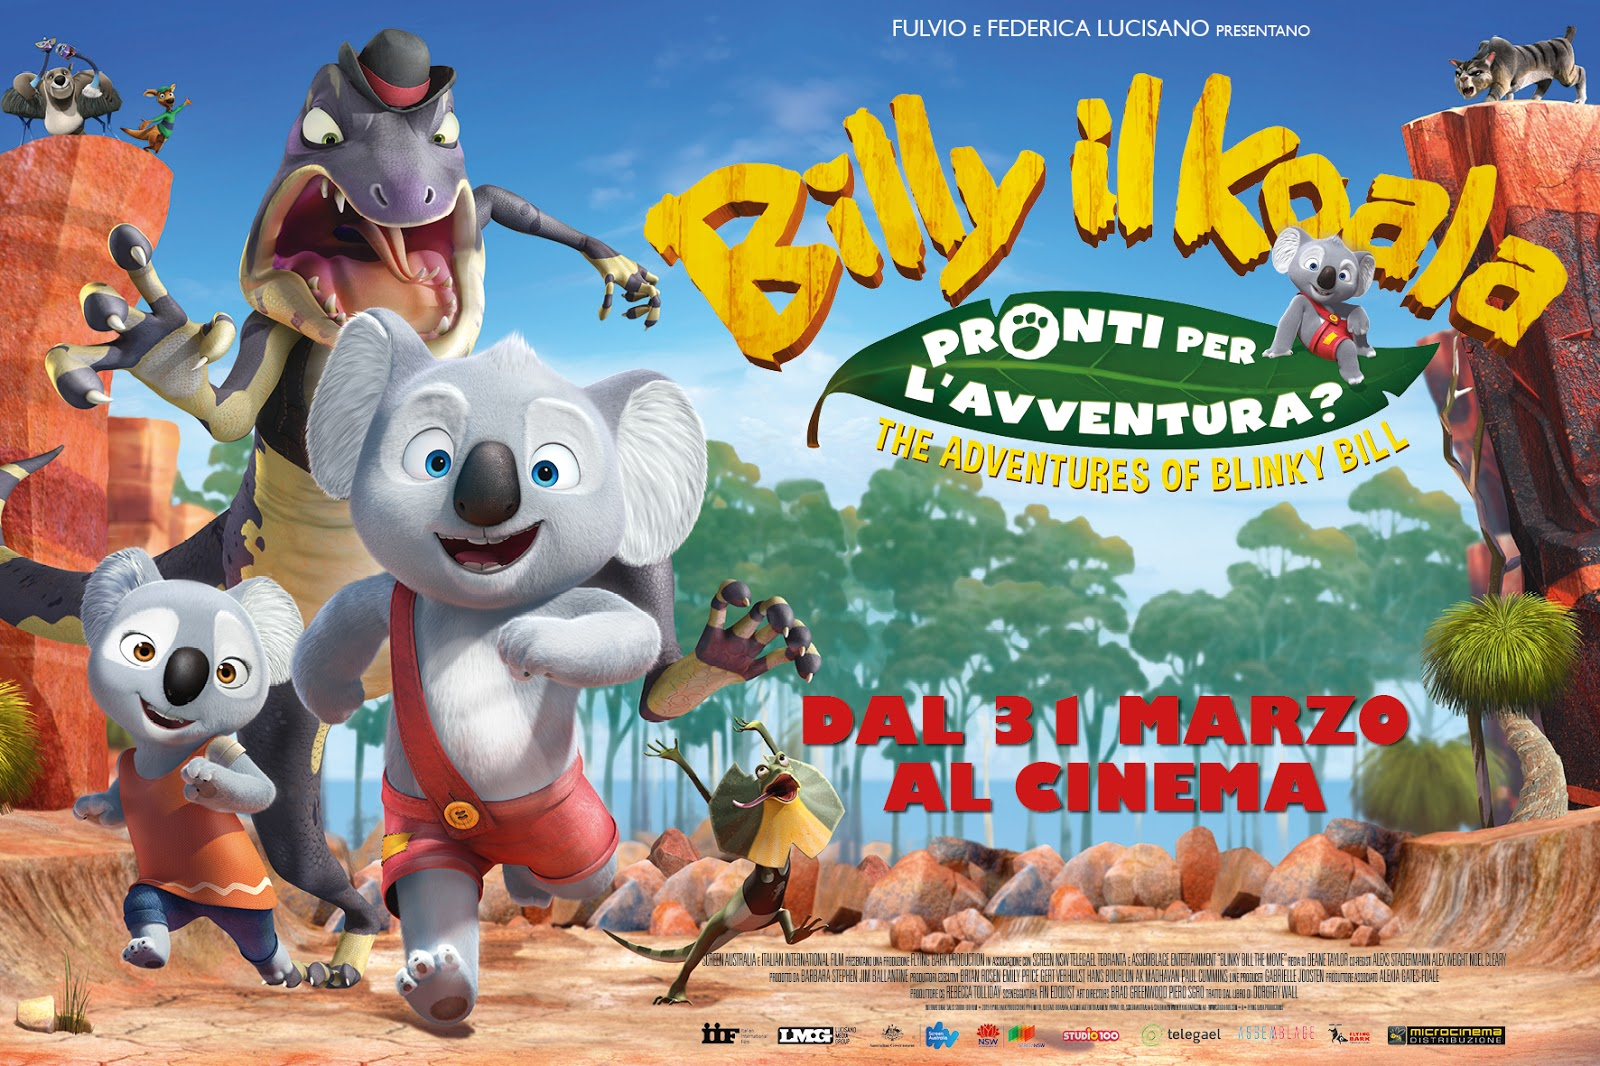 Mamme come me billy il koala the adventures of blinky billy un